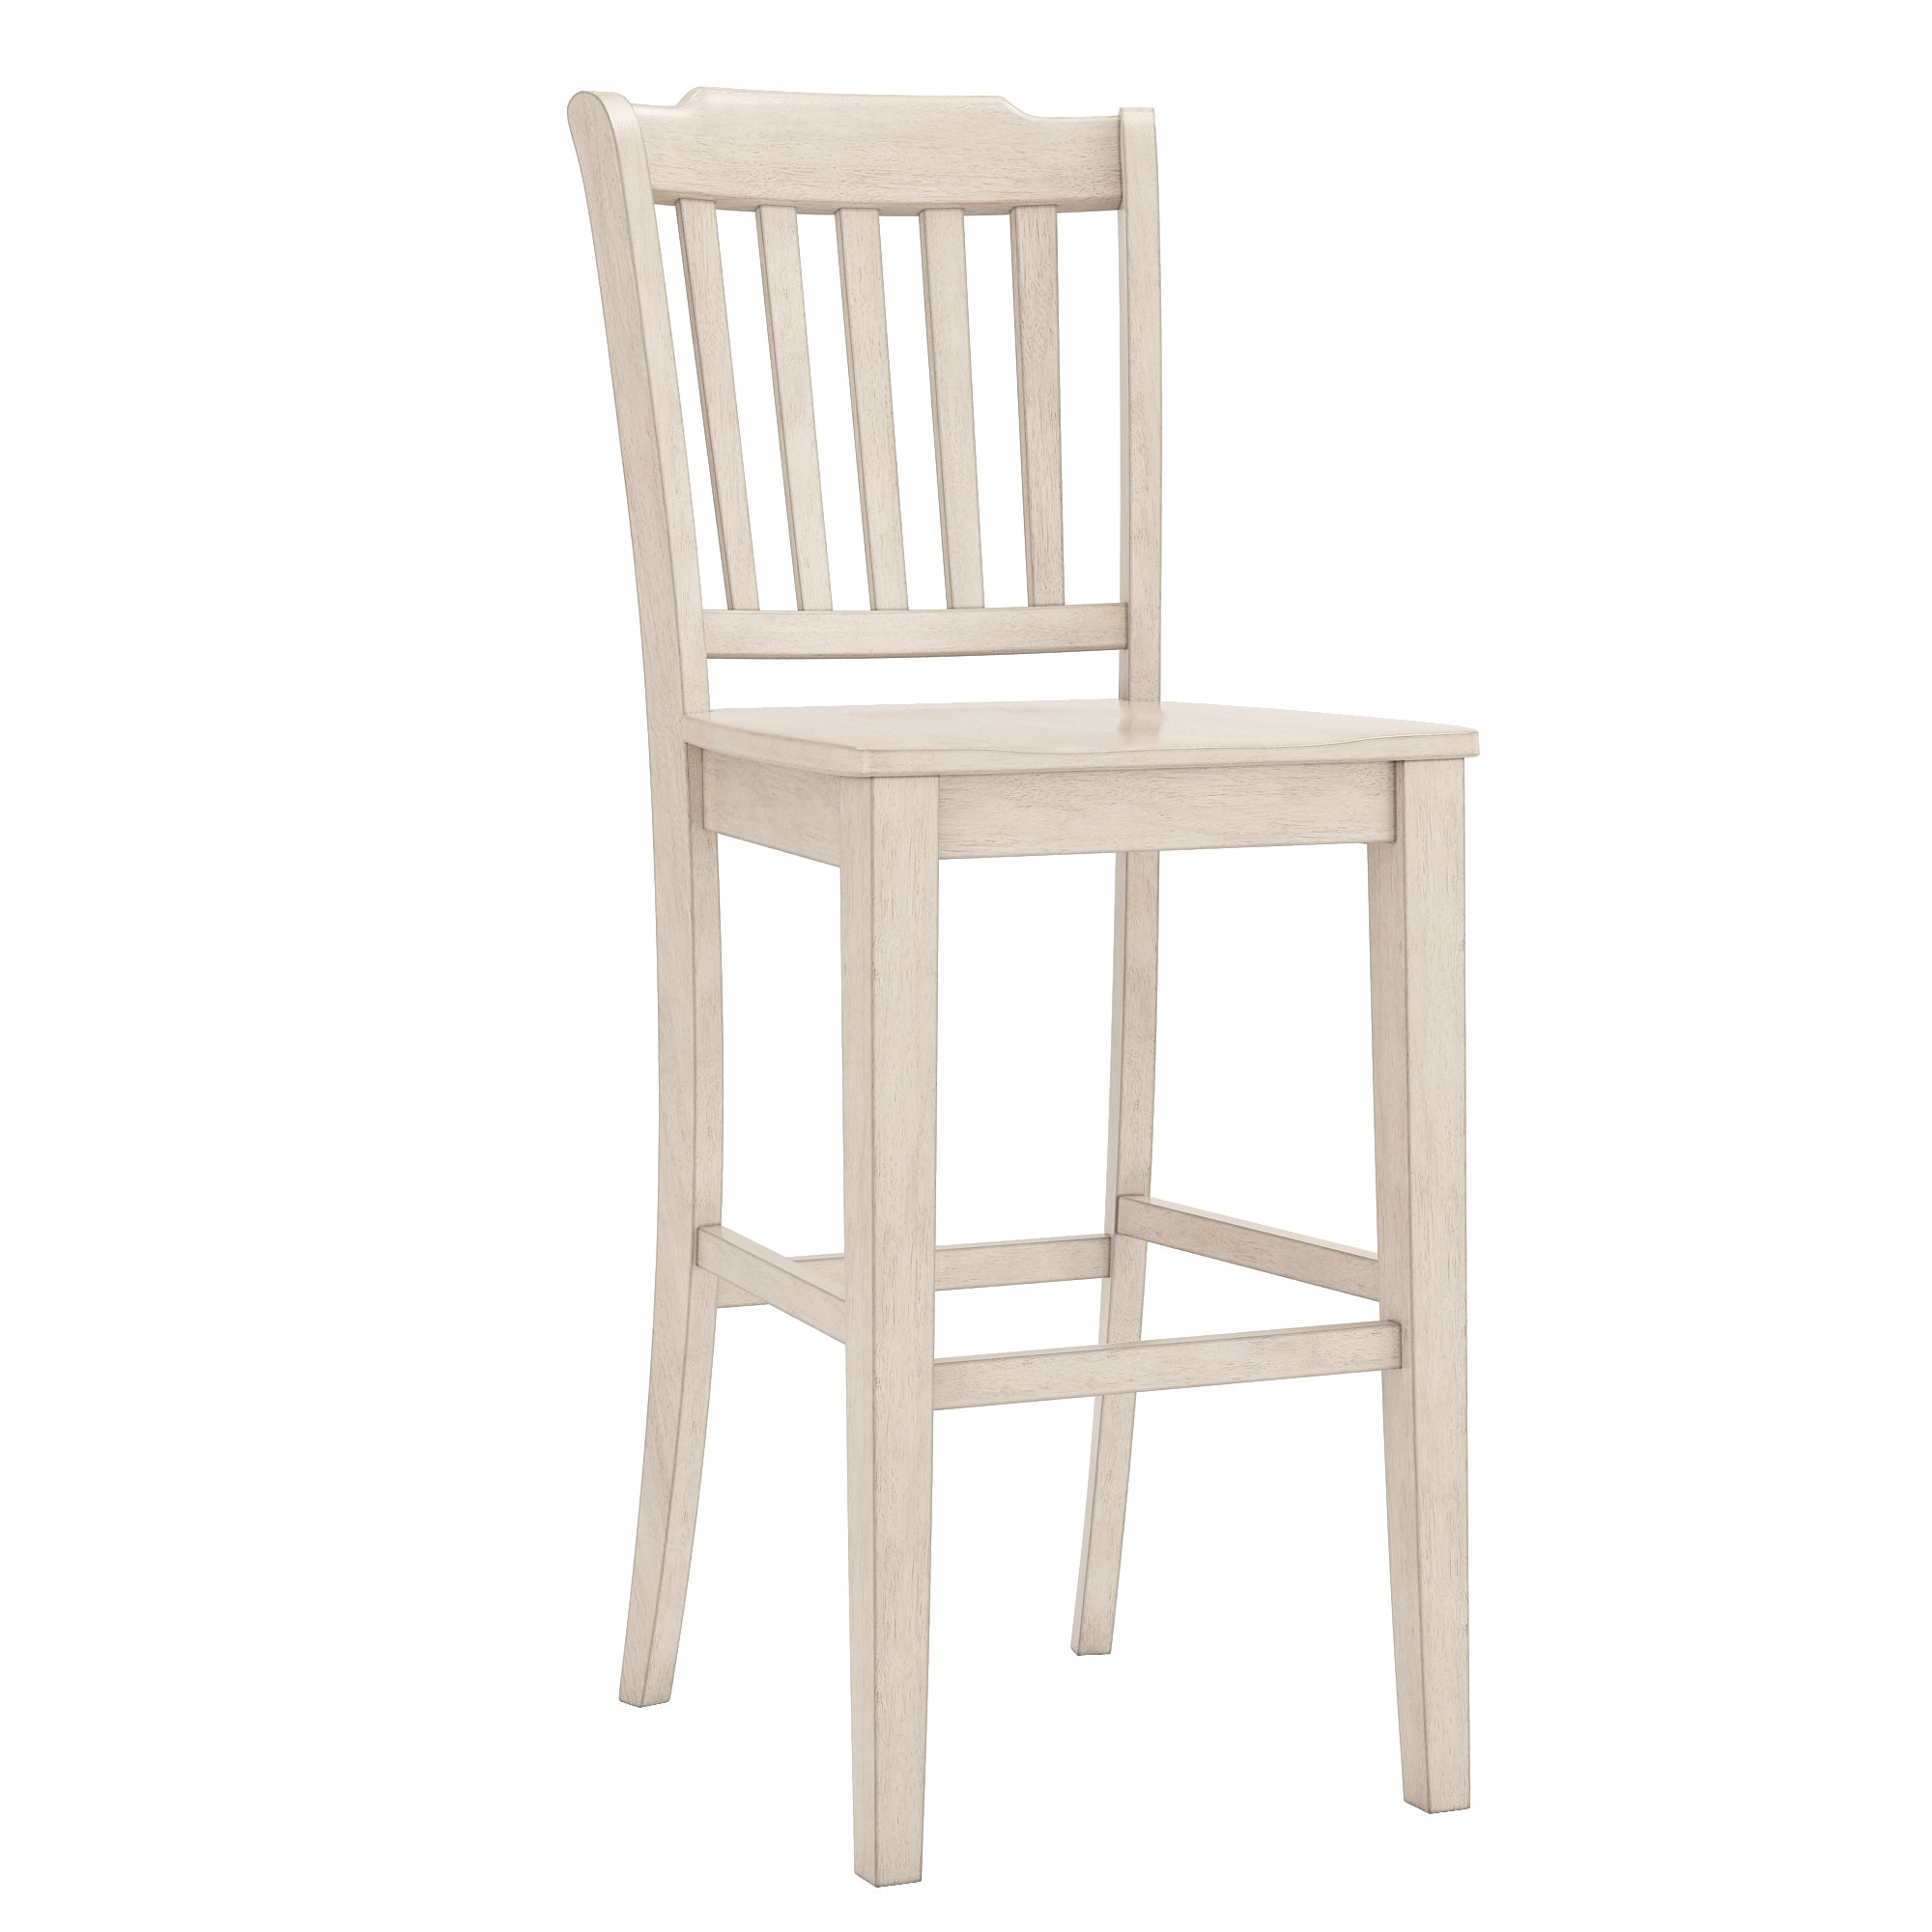 Antique White Finish Slat Back Bar Height Chairs (Set of 2)